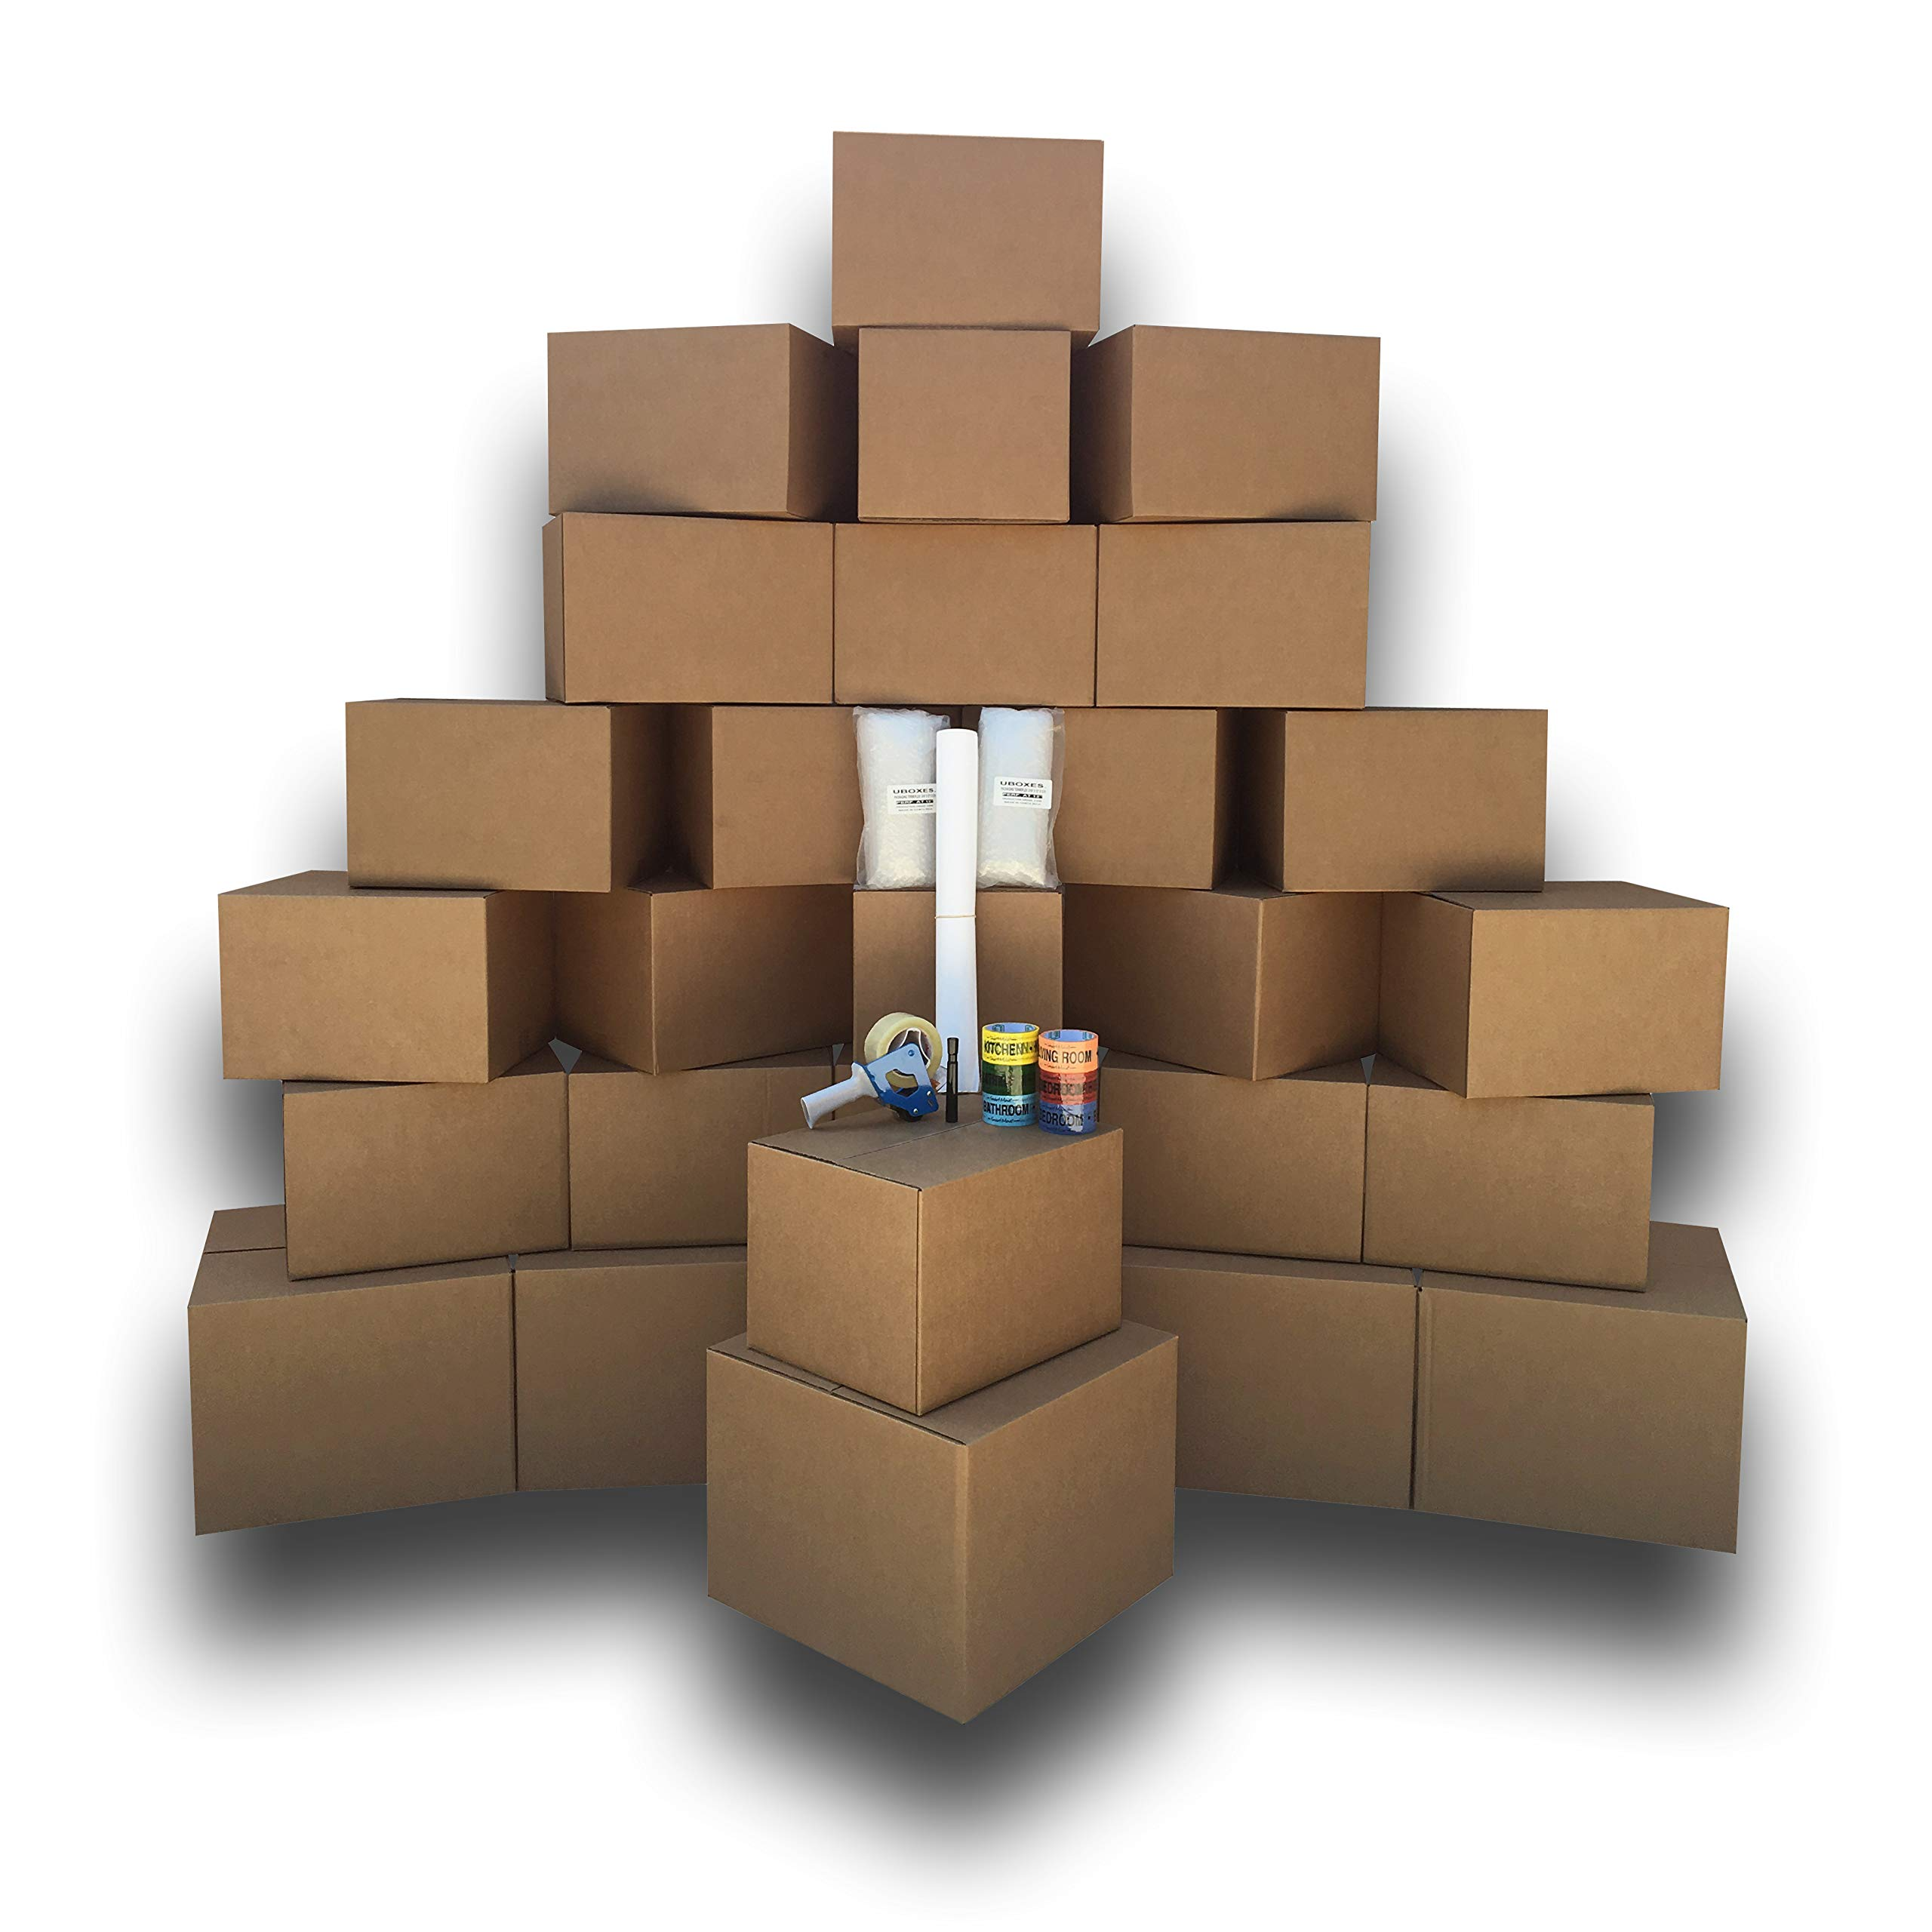 UBOXES Moving Boxes - 2 Room Bigger Smart Moving Kit - 28 Boxes,Tape, More